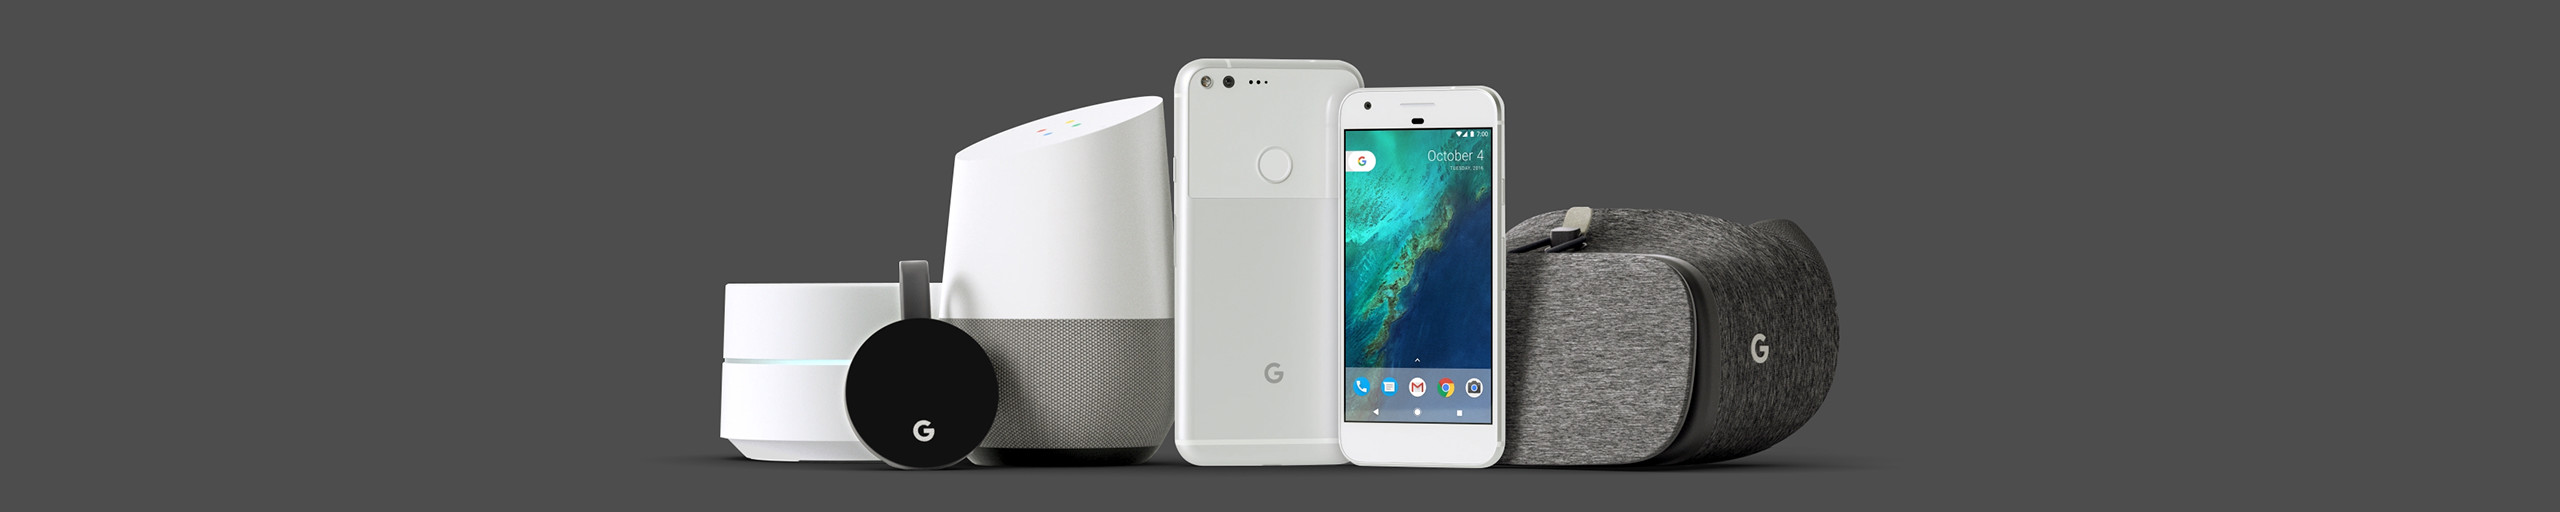 google hardware, keynote design